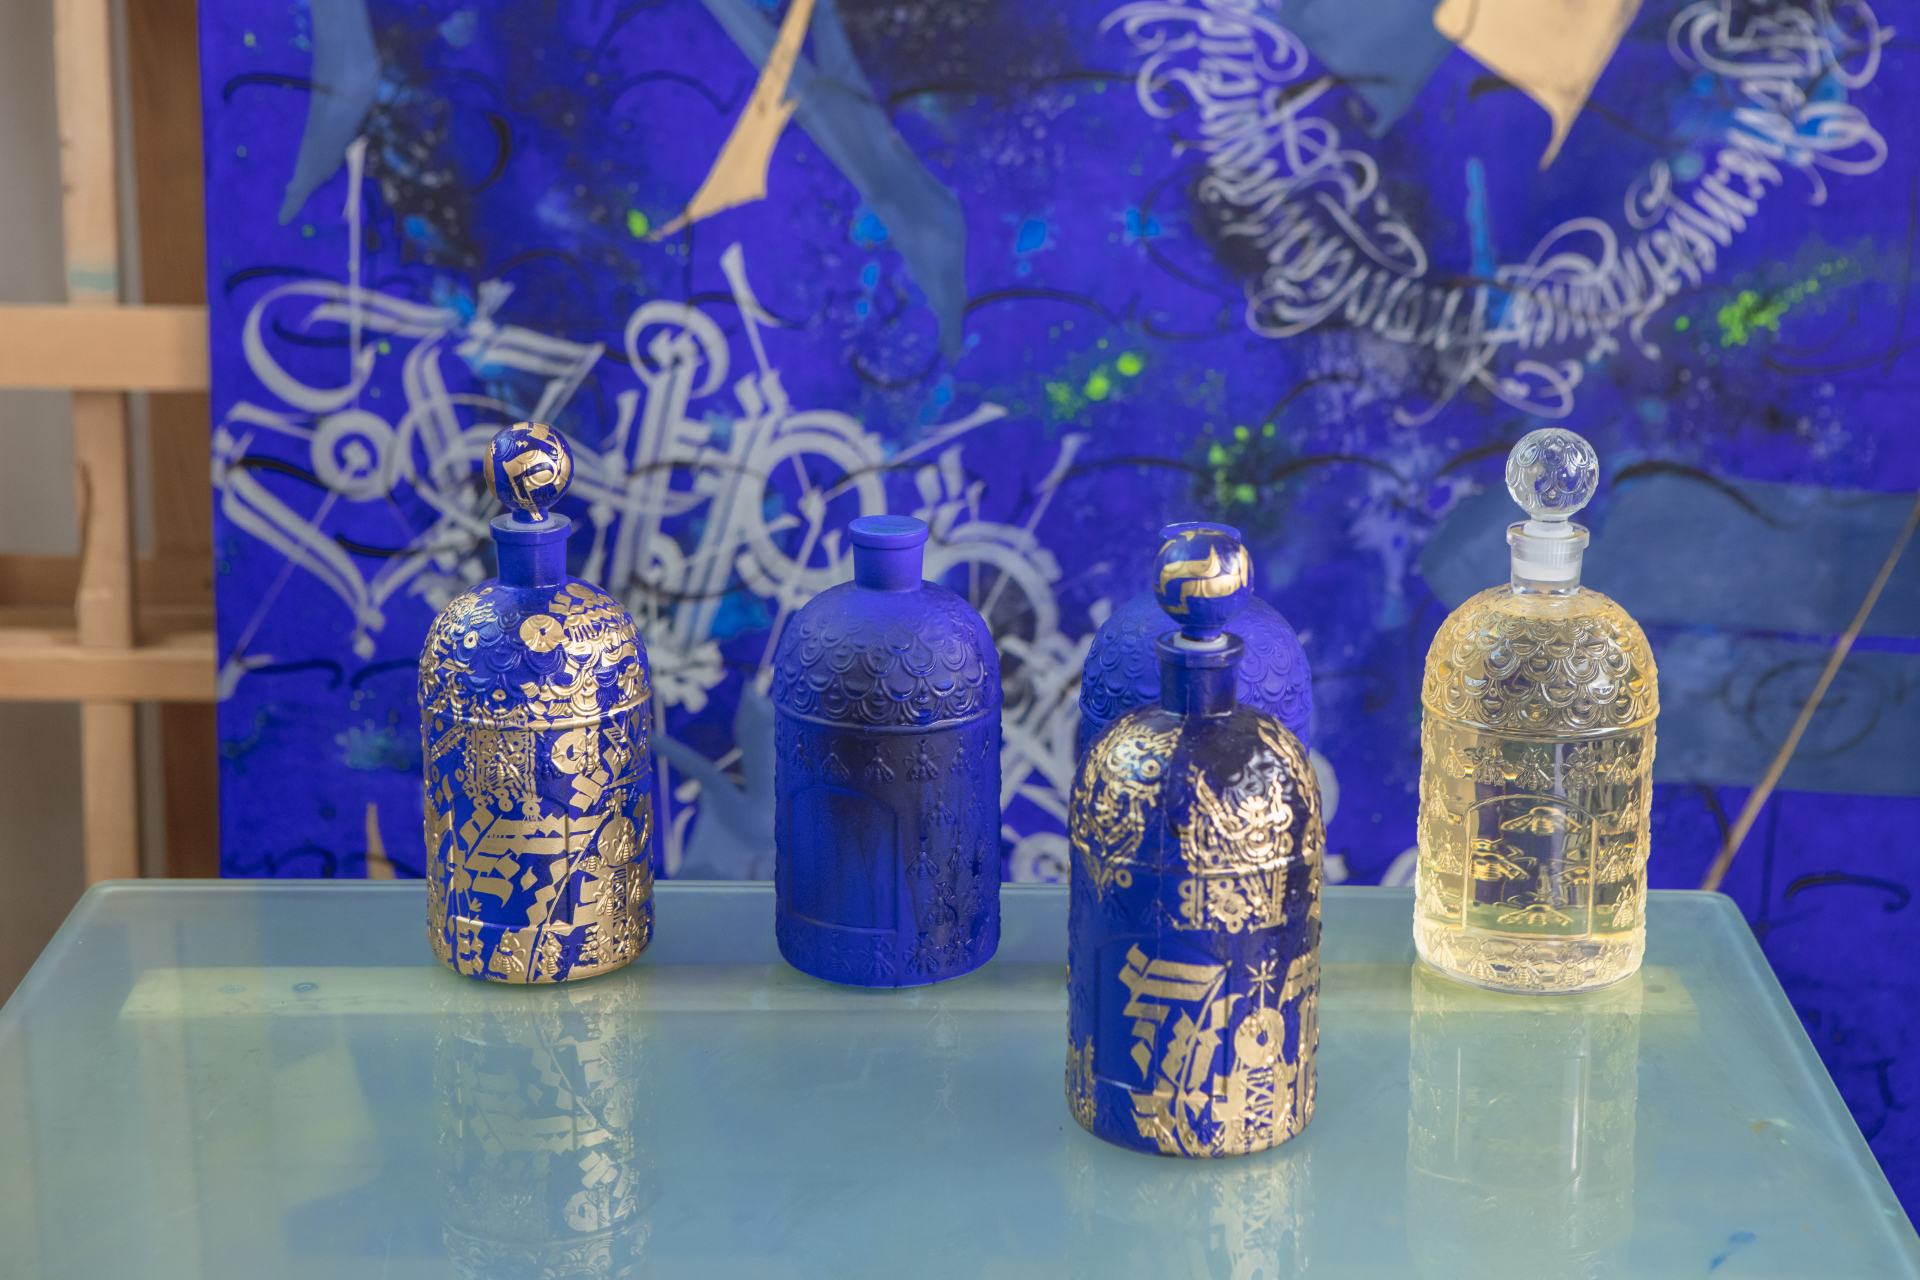 Guerlain gives new life to Santal Royal with a hyper-limited edition